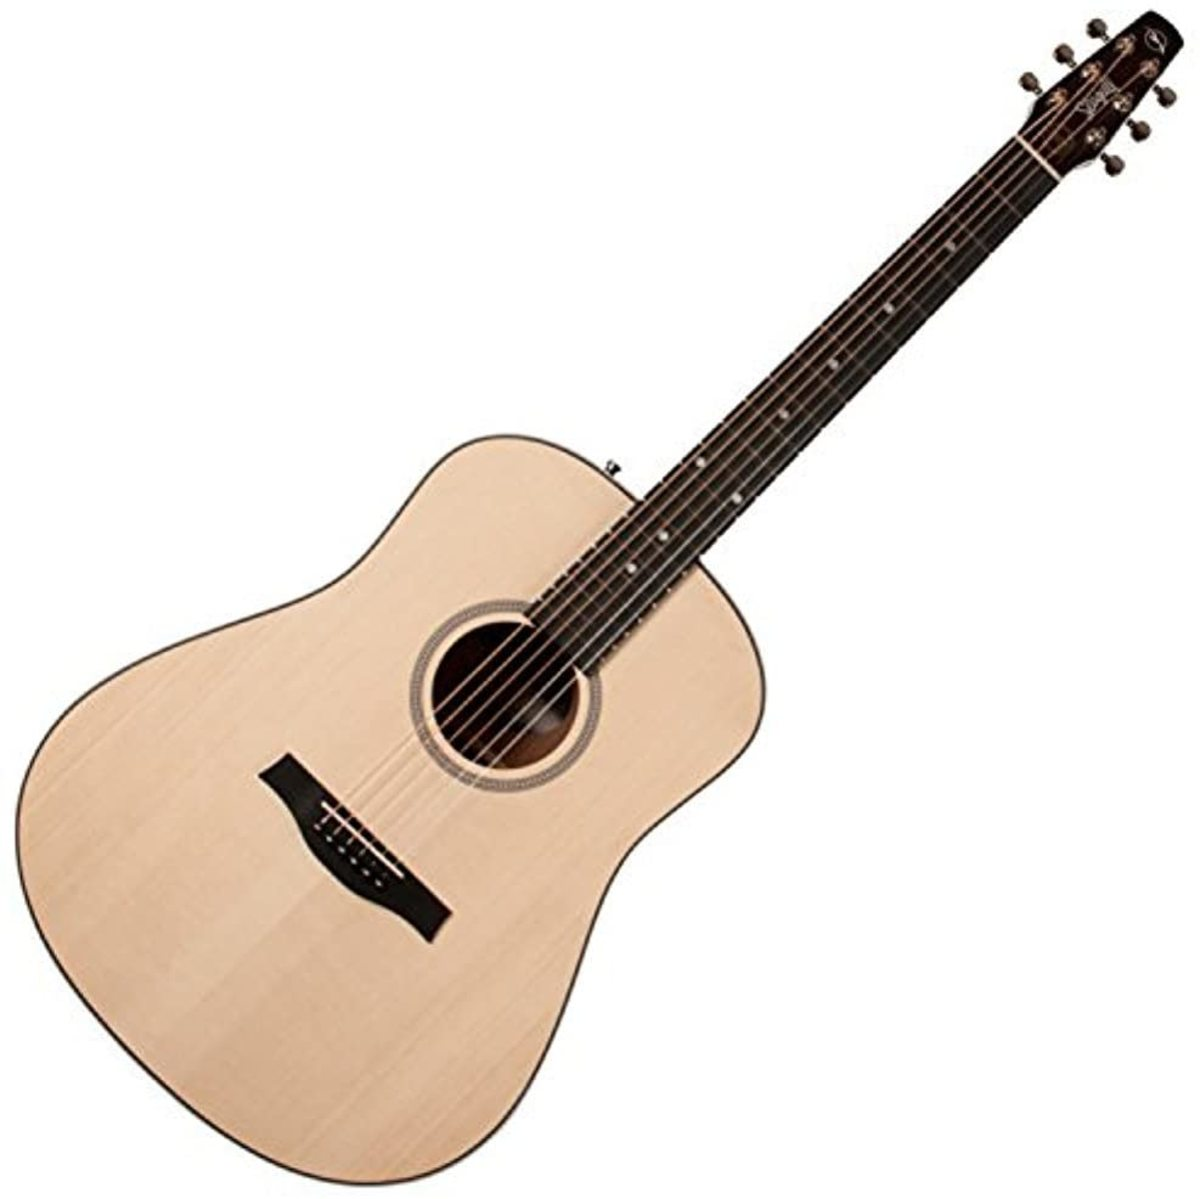 The Seagull Maritime SWS  is one of the best acoustic guitars you'll find for under $1000.